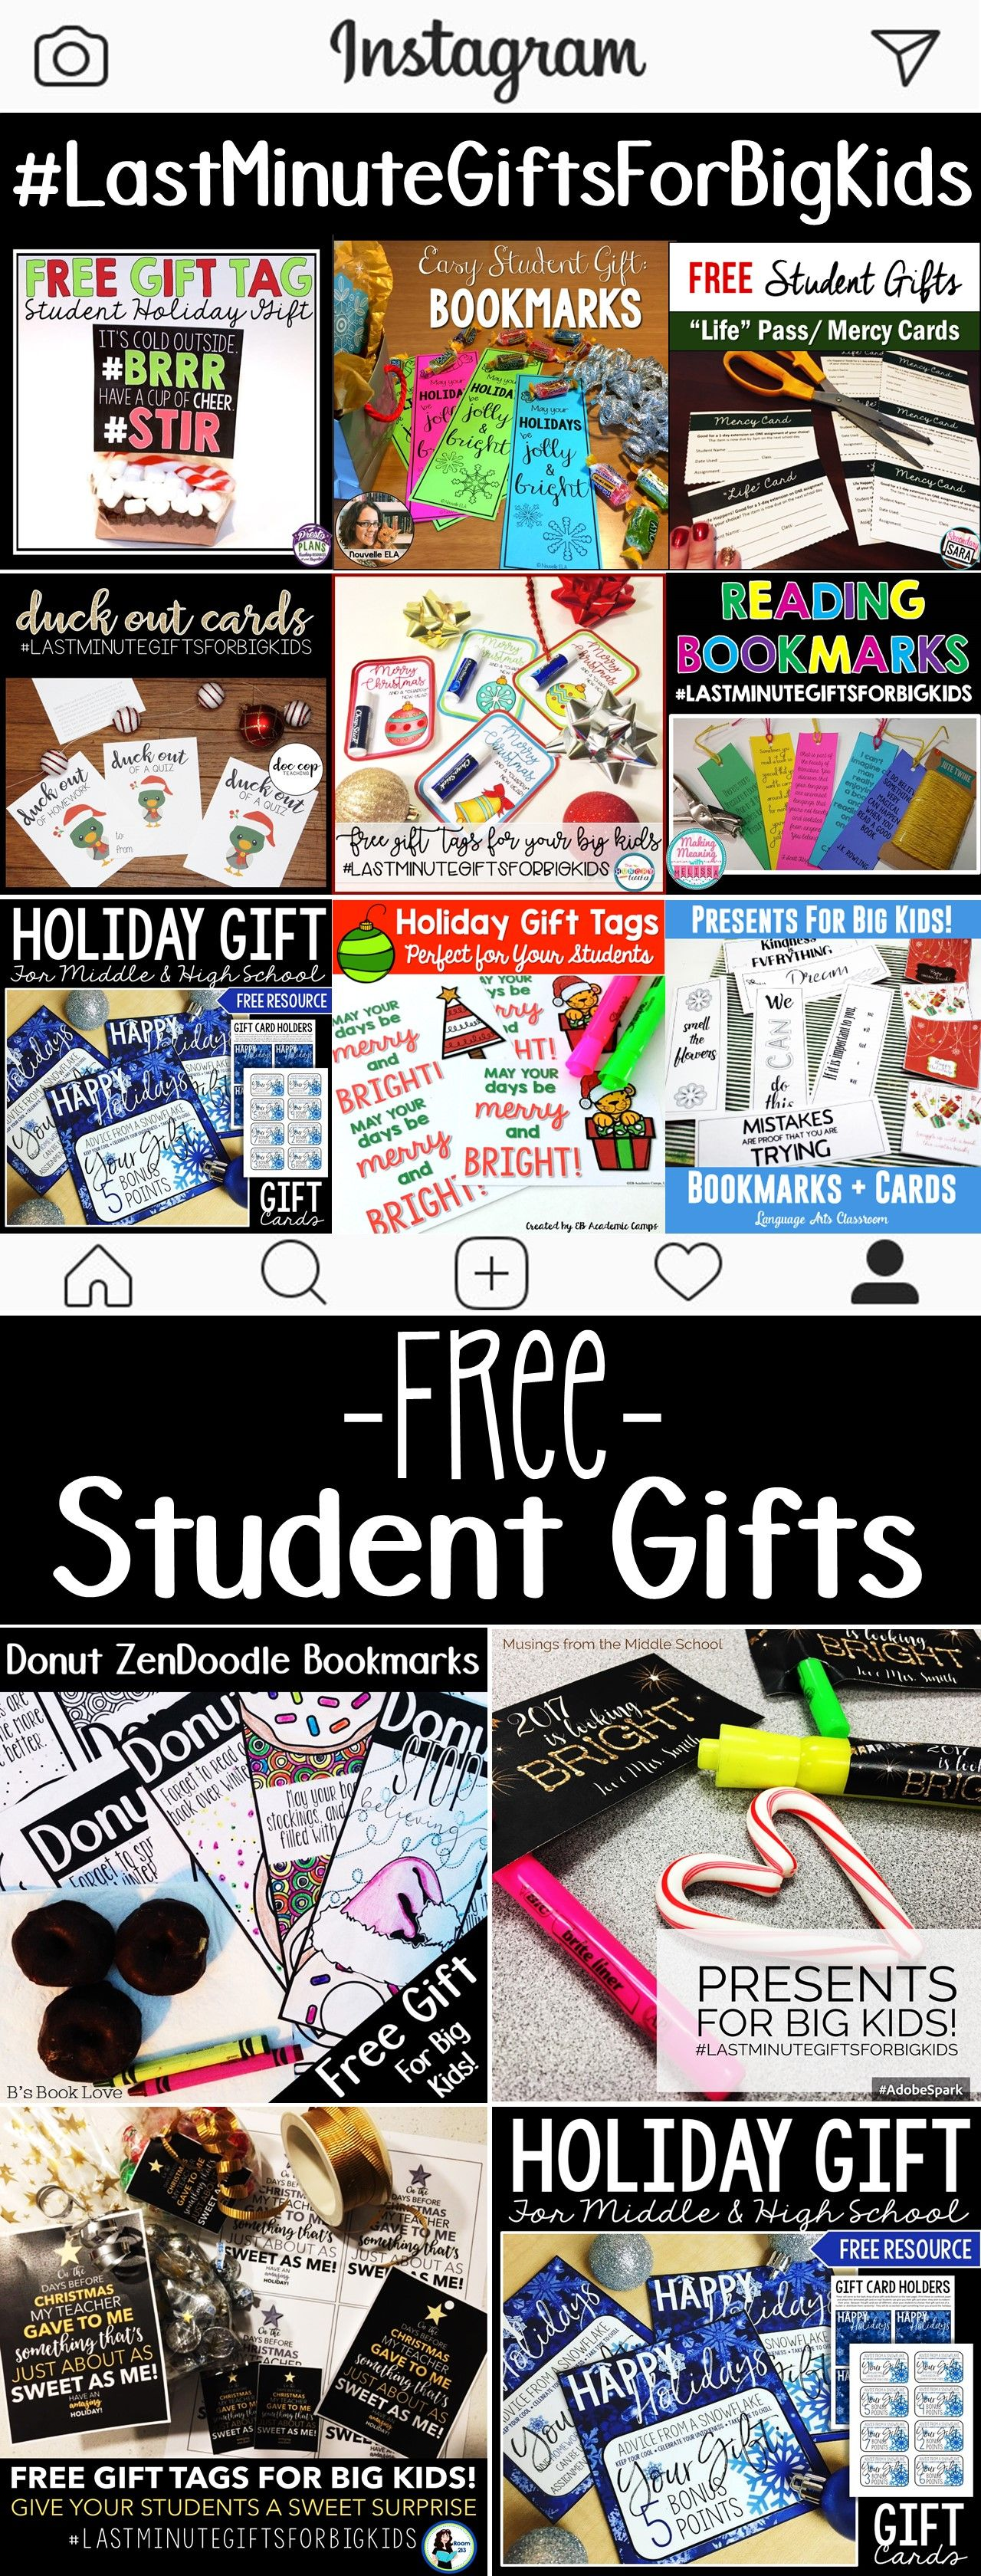 Last Minute Ts For Big Kids Free Printable Student